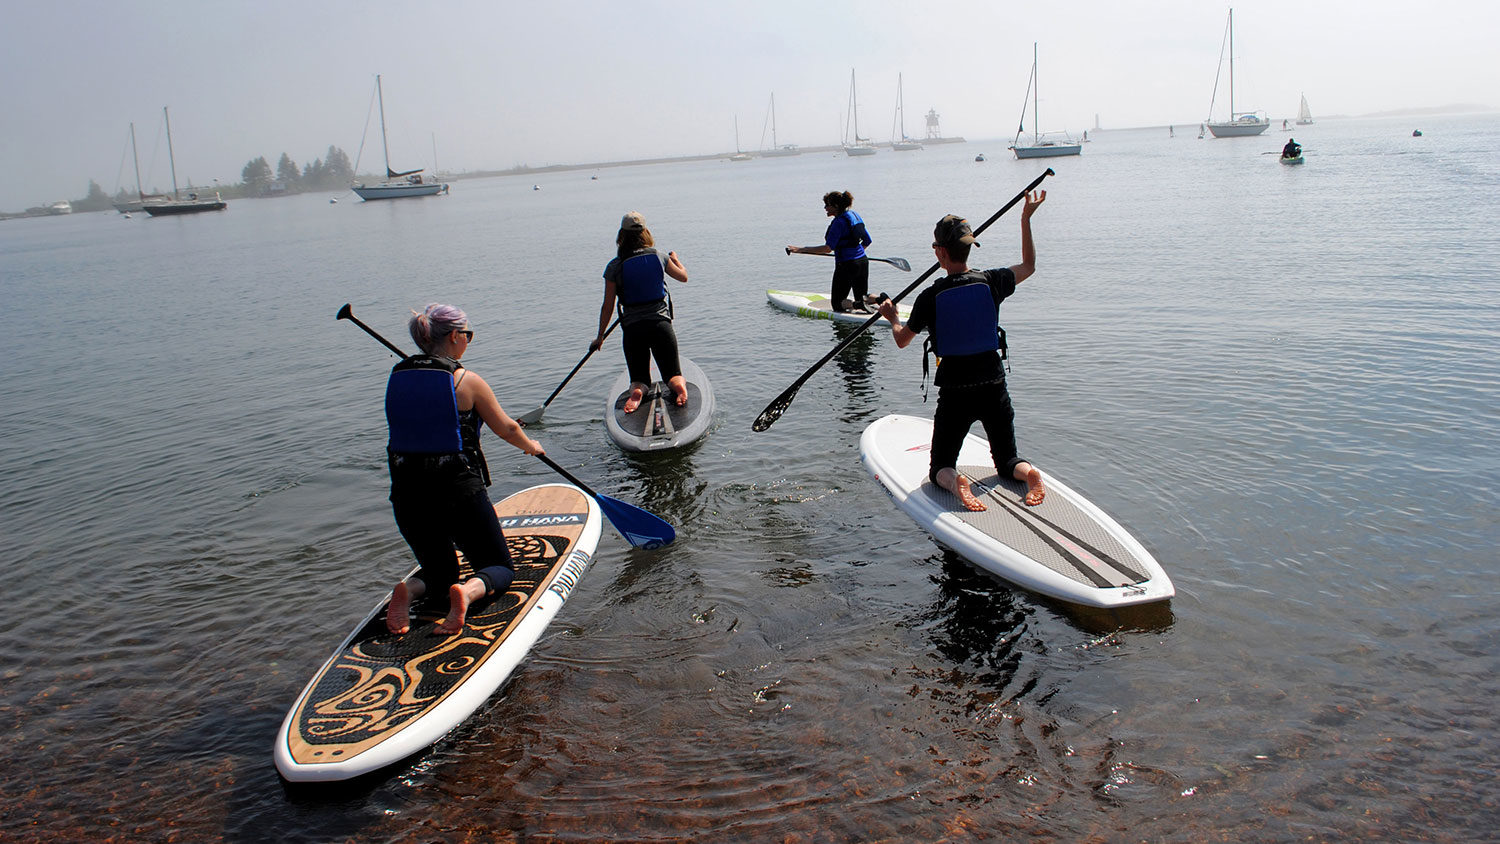 Paddleboarding - Professional Development - College of Natural Resources at NC State University